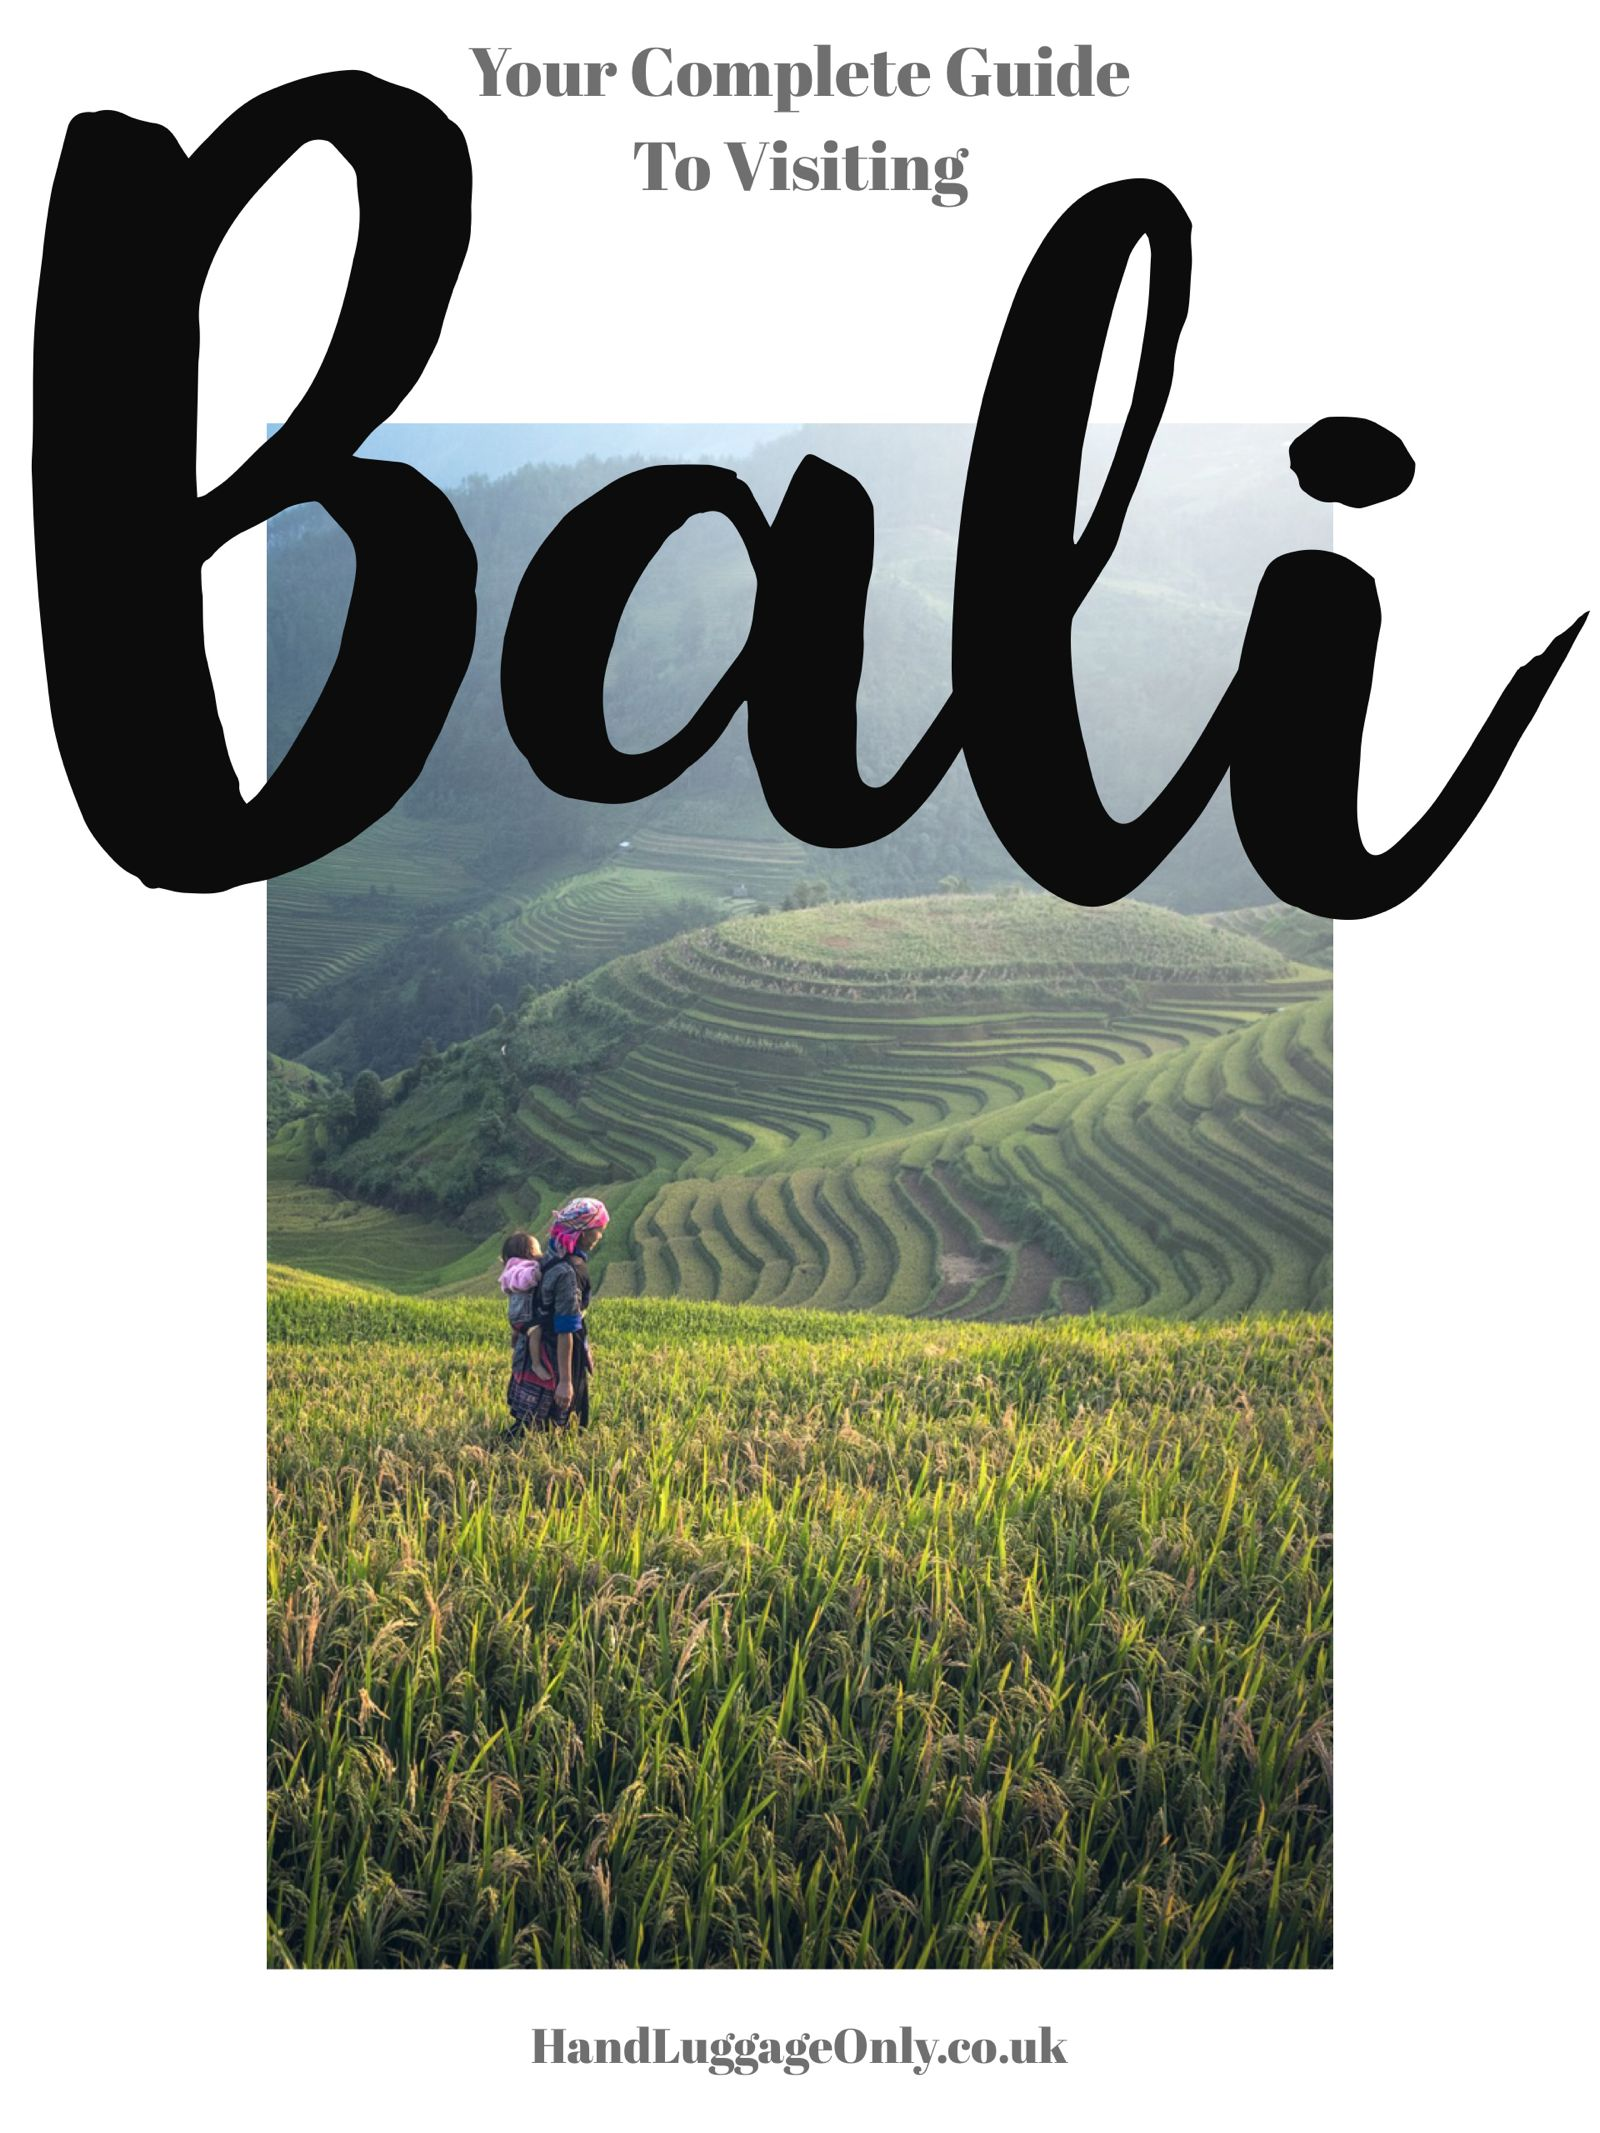 Complete Guide Of Things To See in Bali Guide (33)